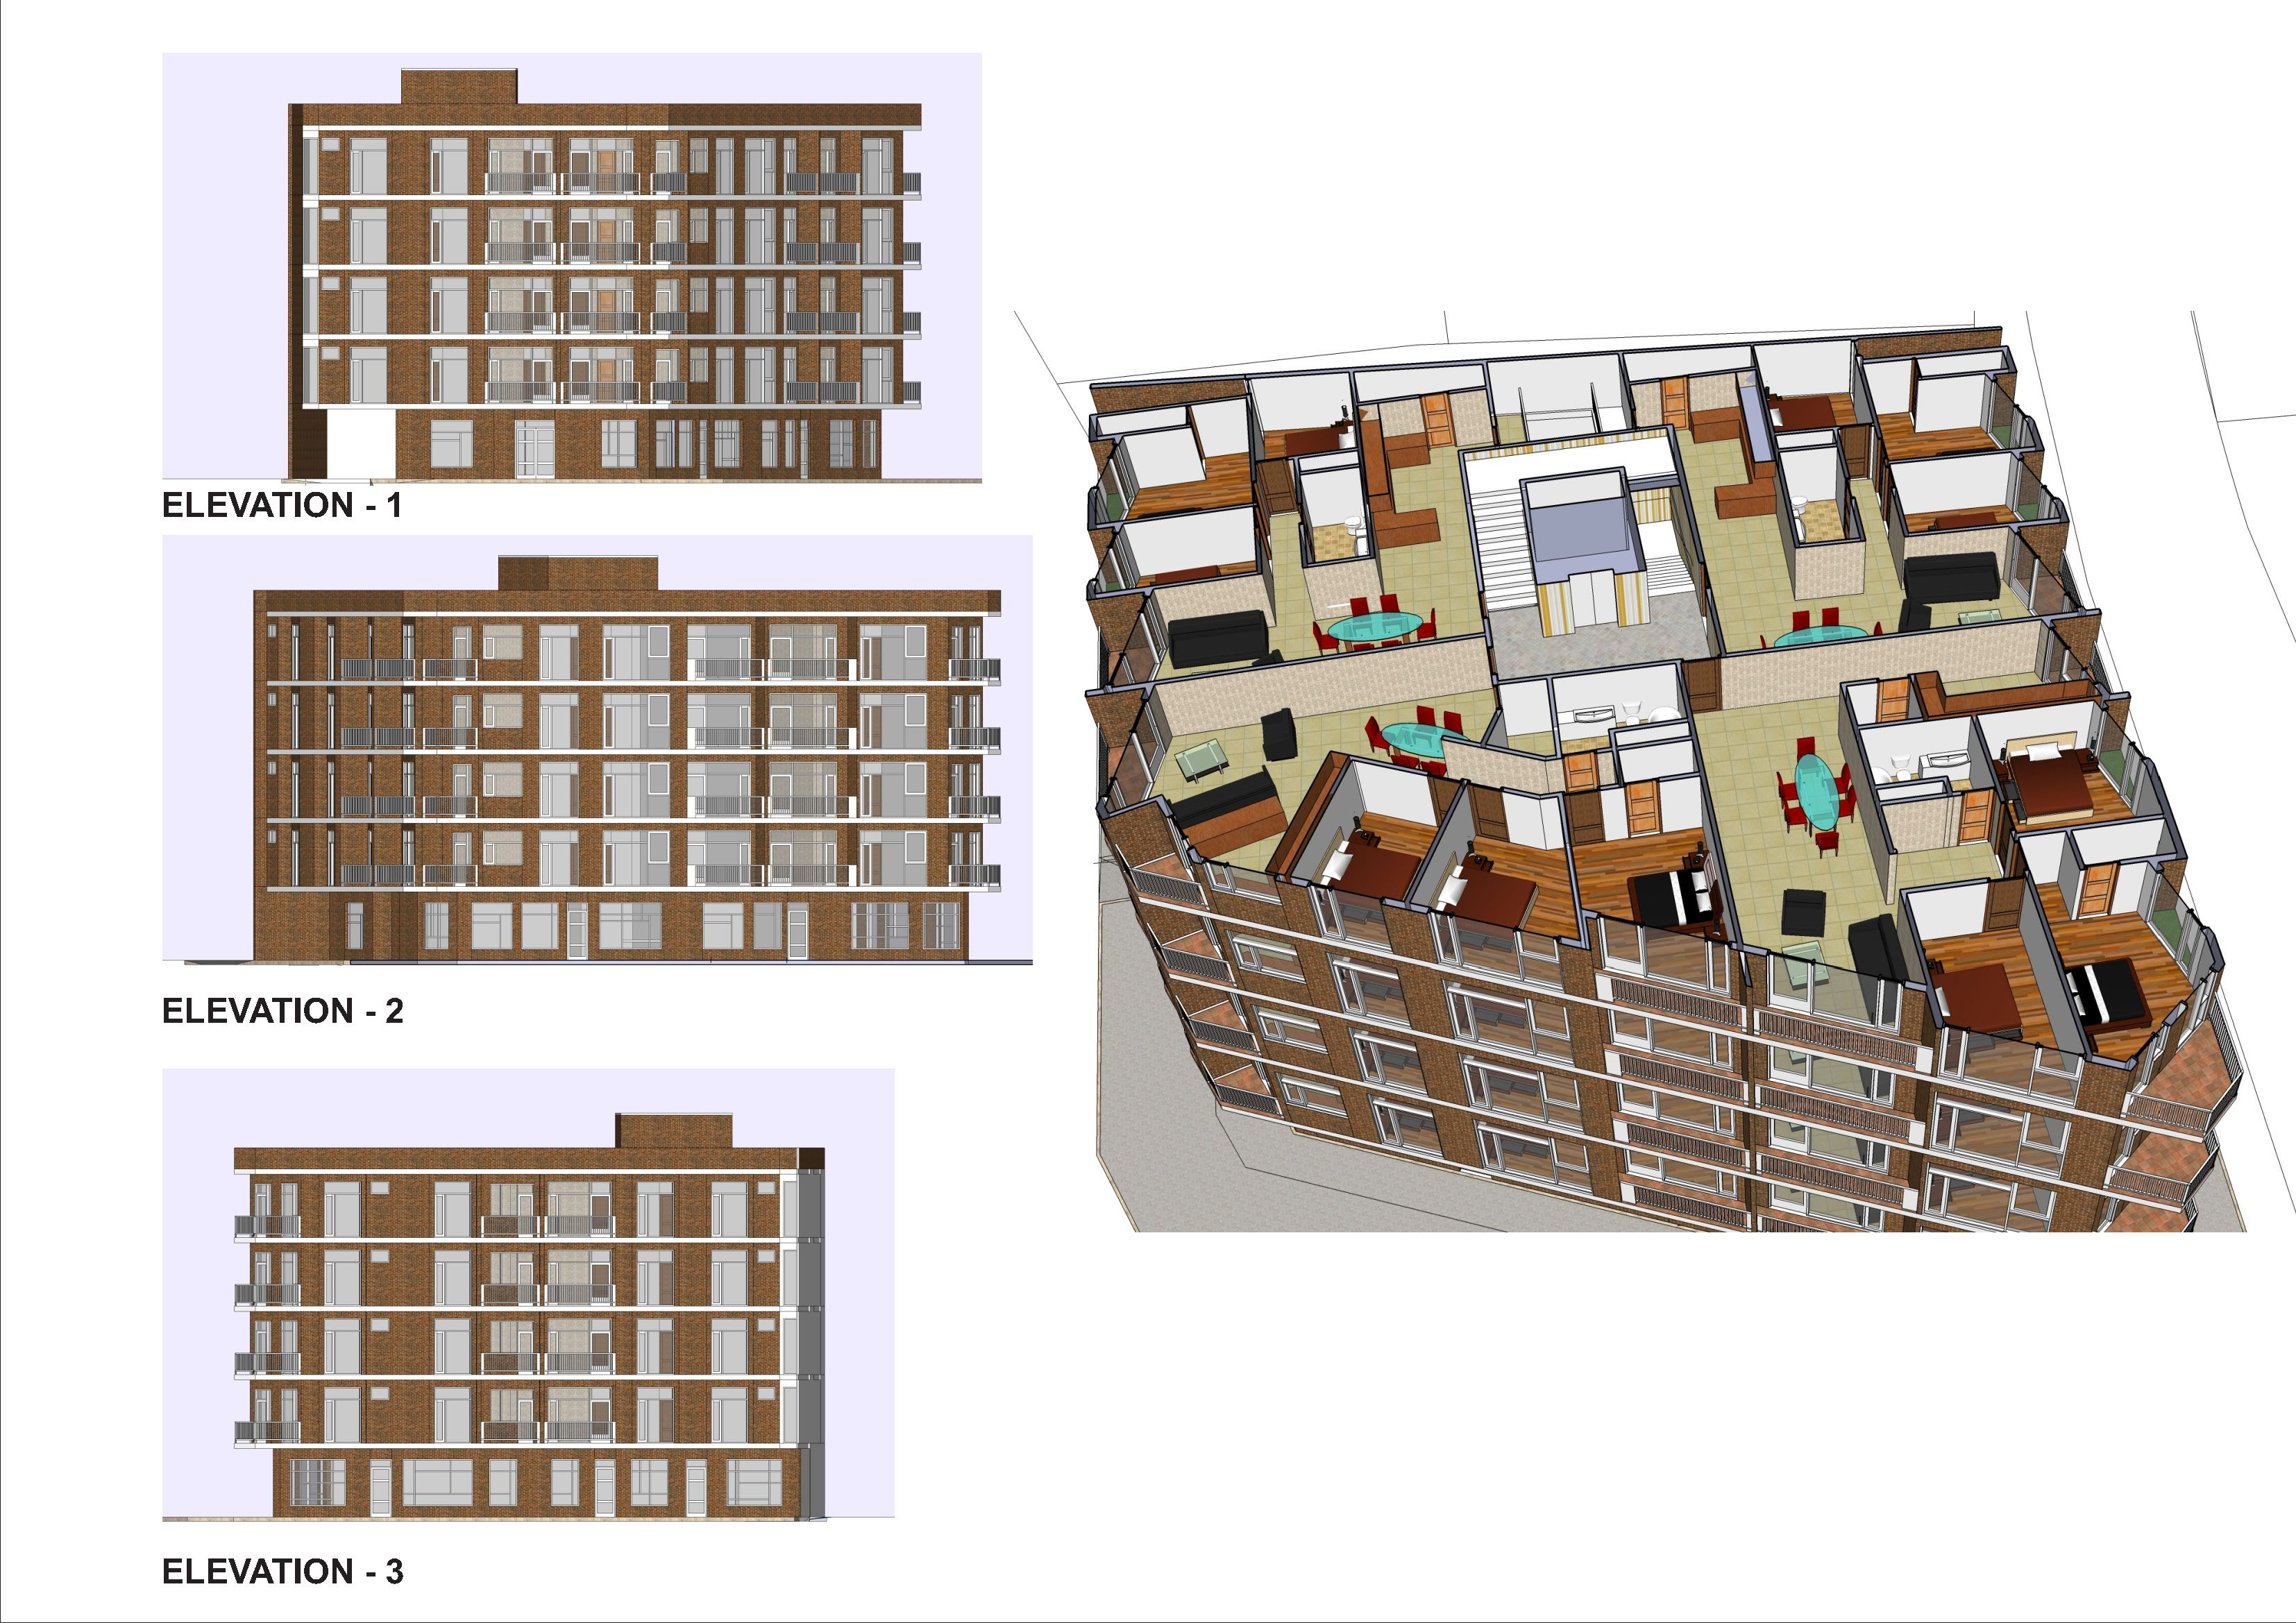 Apartment building plans location aksaray turkey new for Building design website